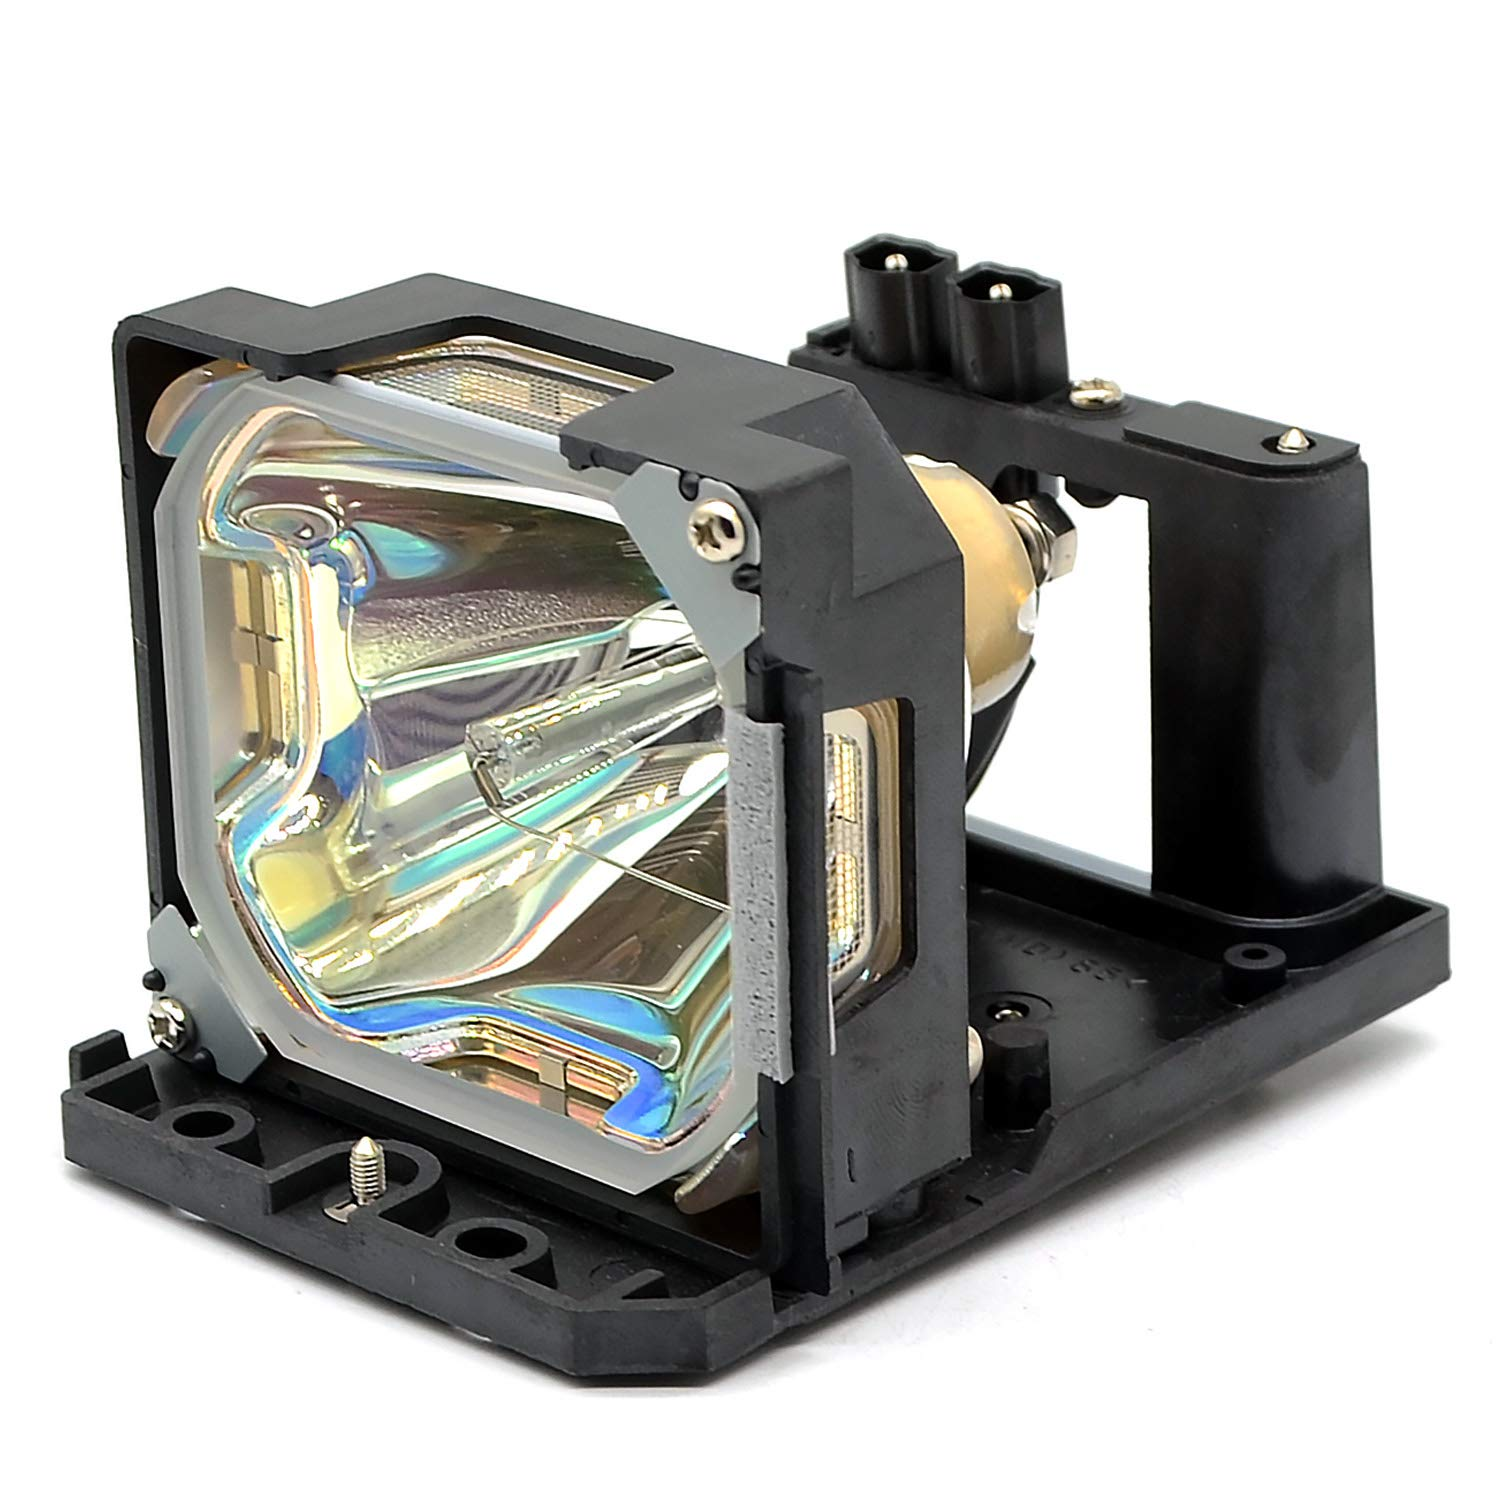 for 3M DX70i Projector Lamp Replacement Assembly with Genuine Original OEM Osram PVIP Bulb Inside IET Lamps